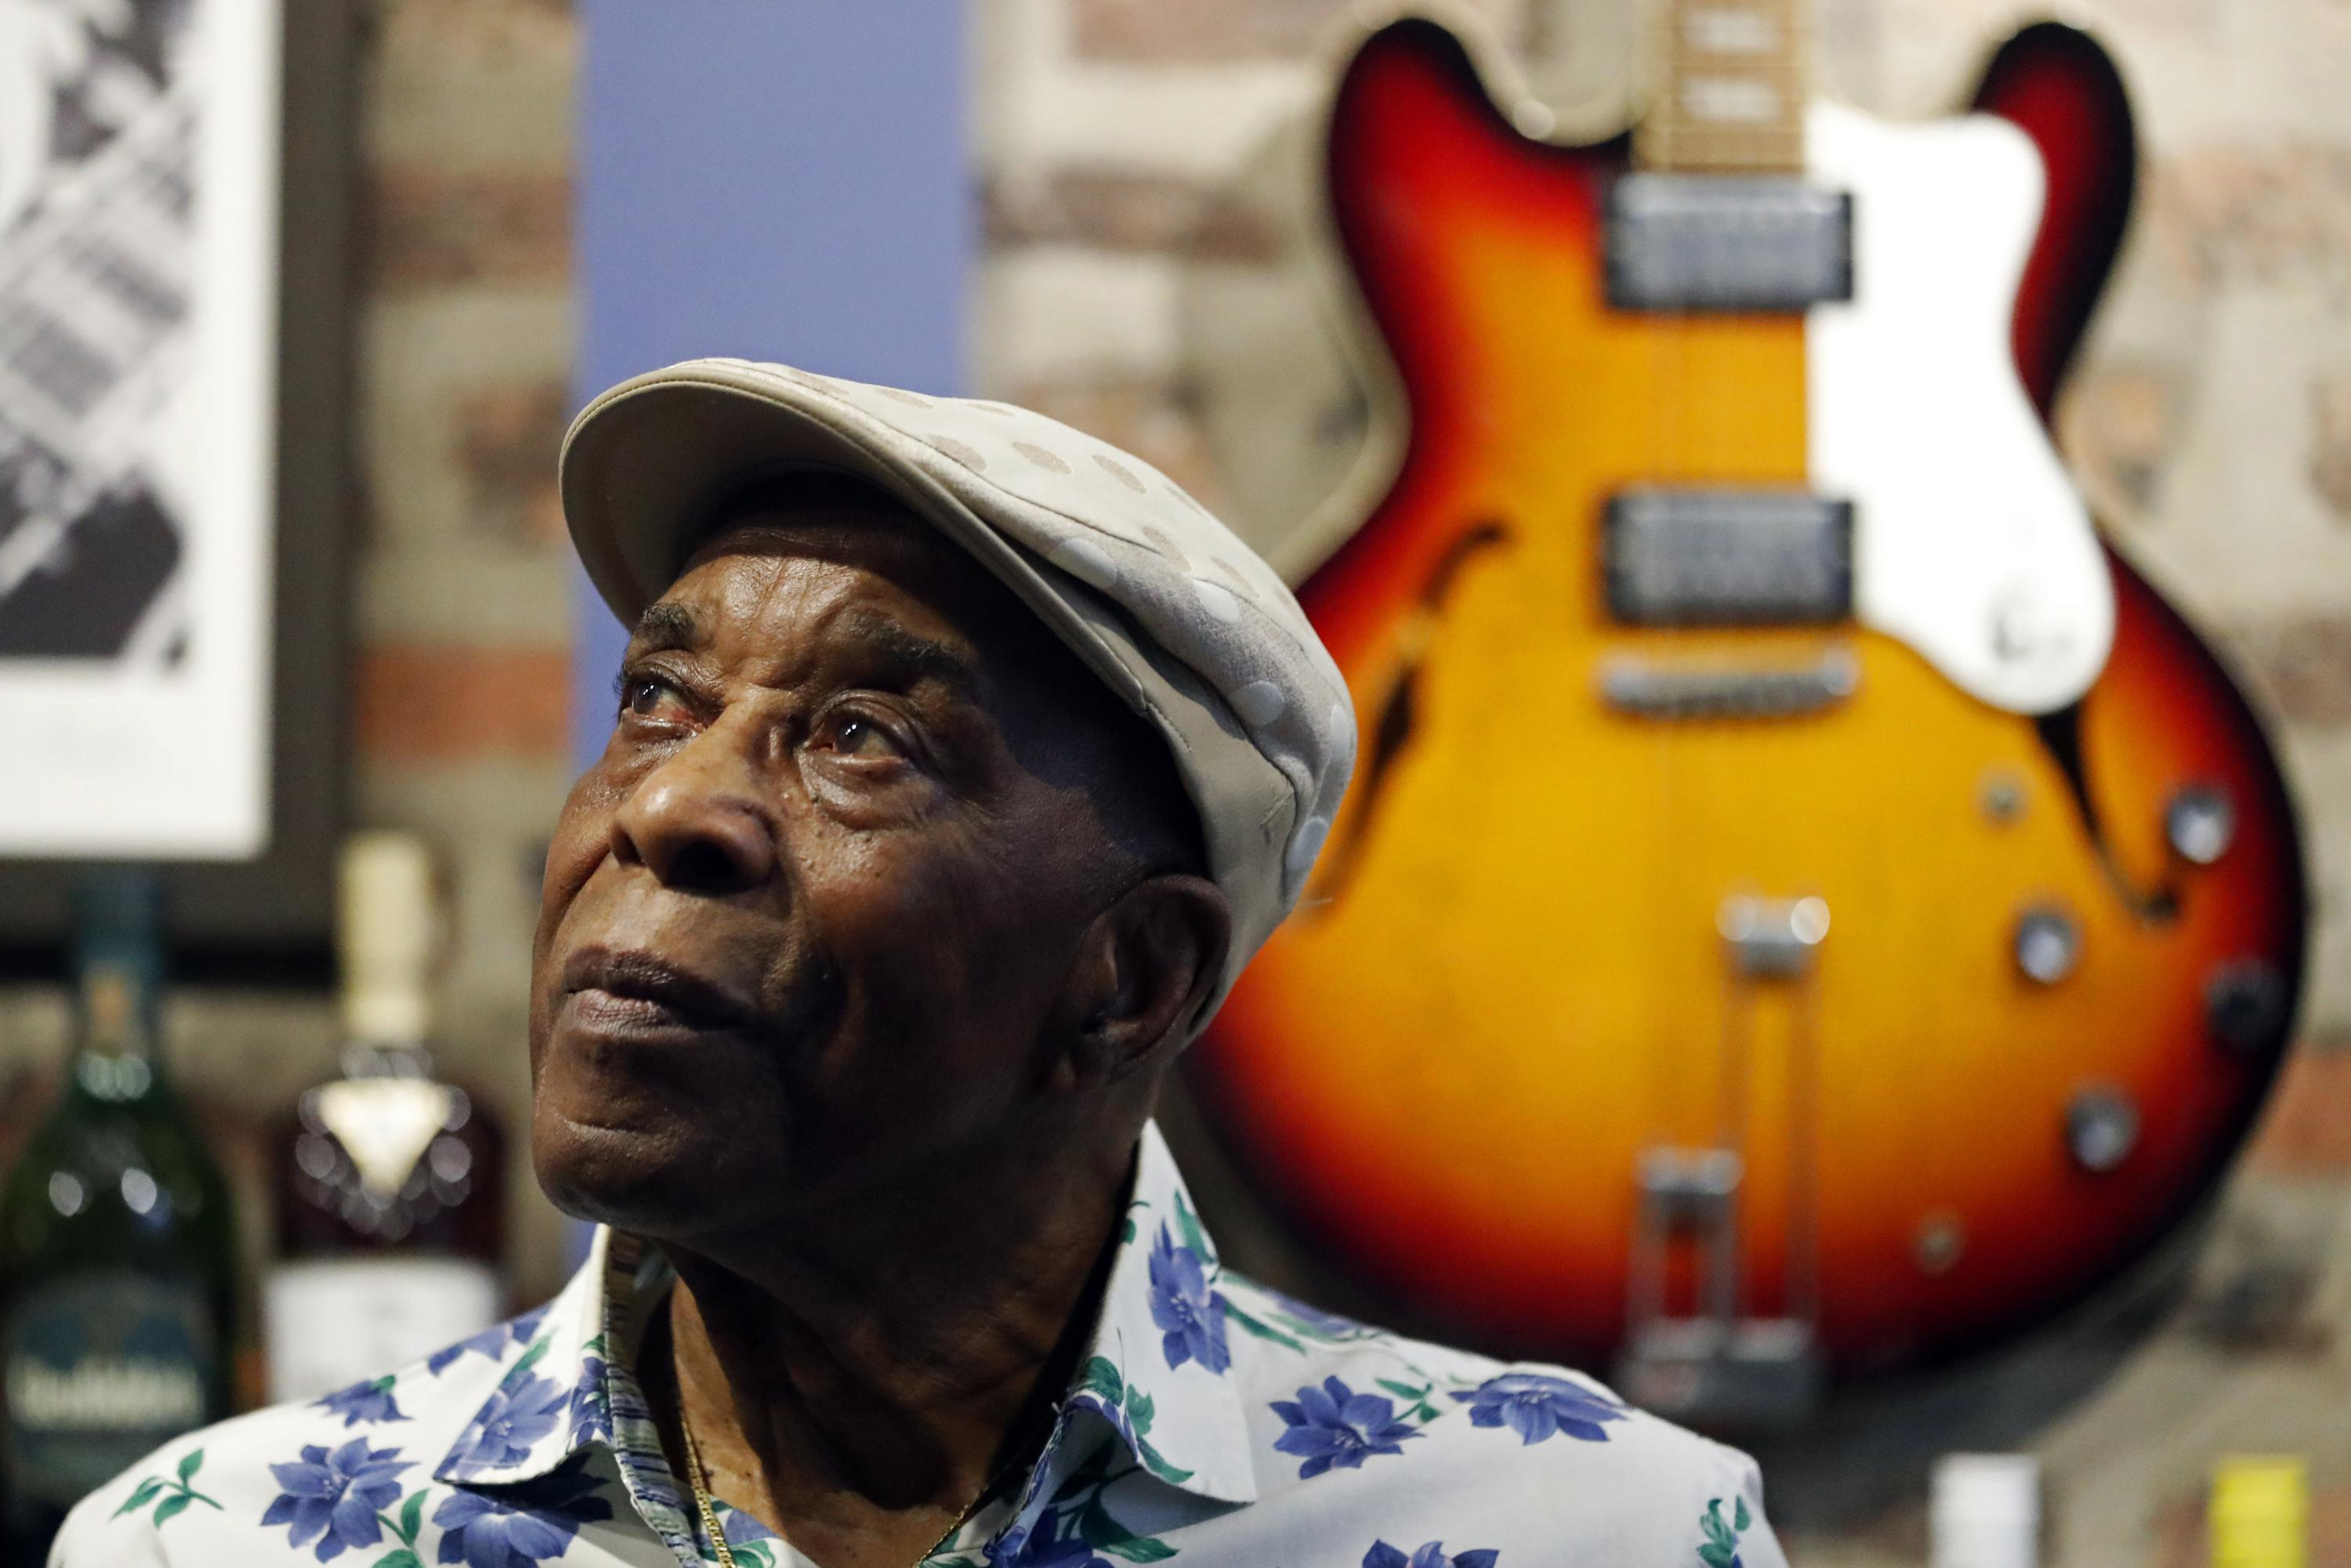 Blues guitar legend Buddy Guy looks back on a special career